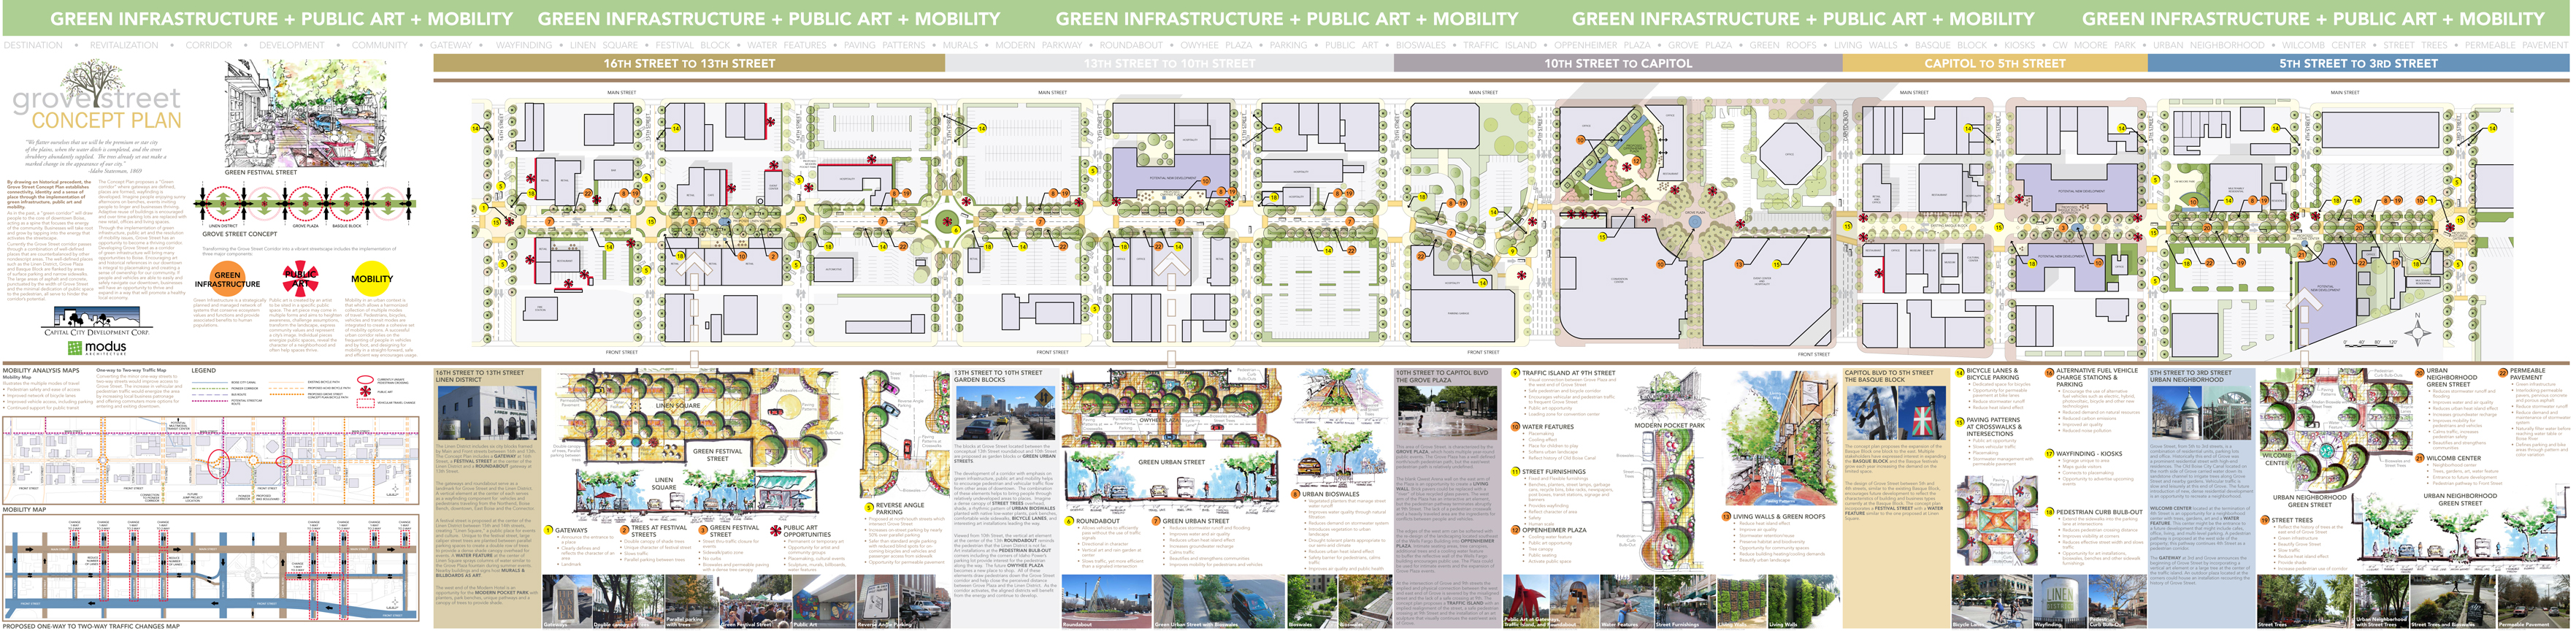 thesis residential mobility